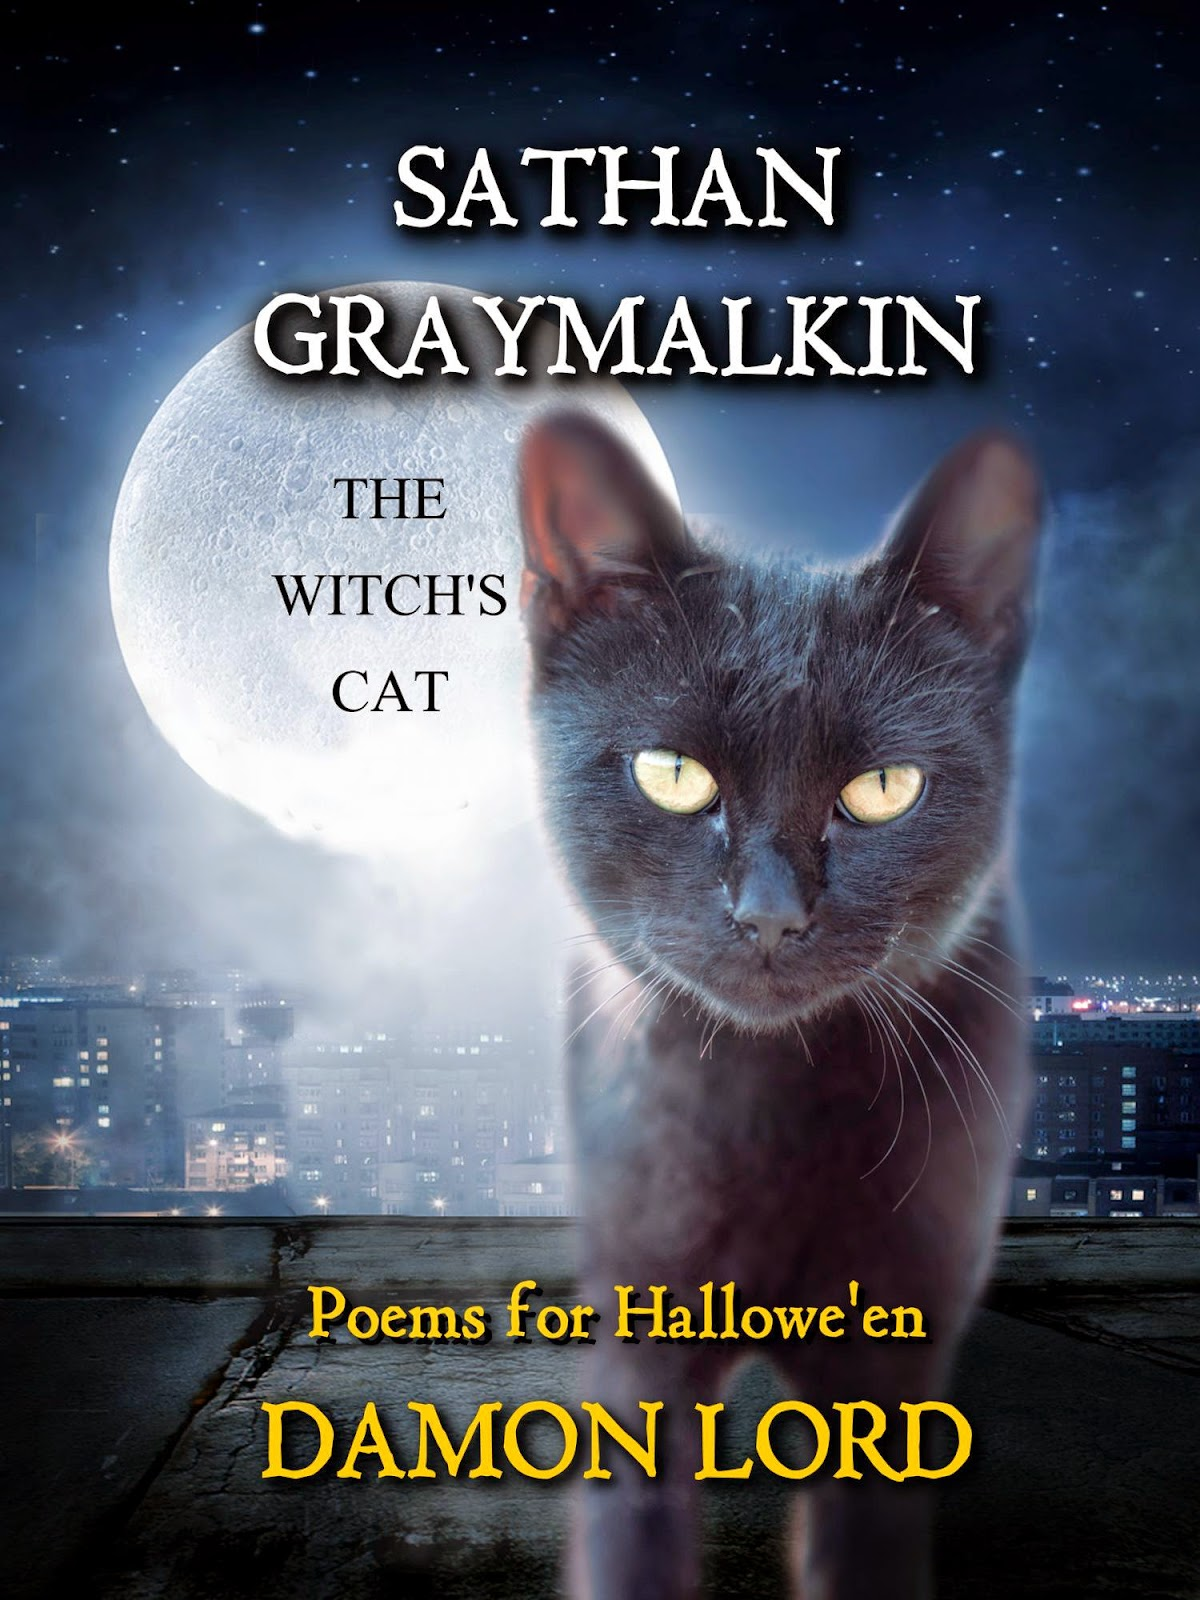 Sathan Graymalkin the witch's cat book cover